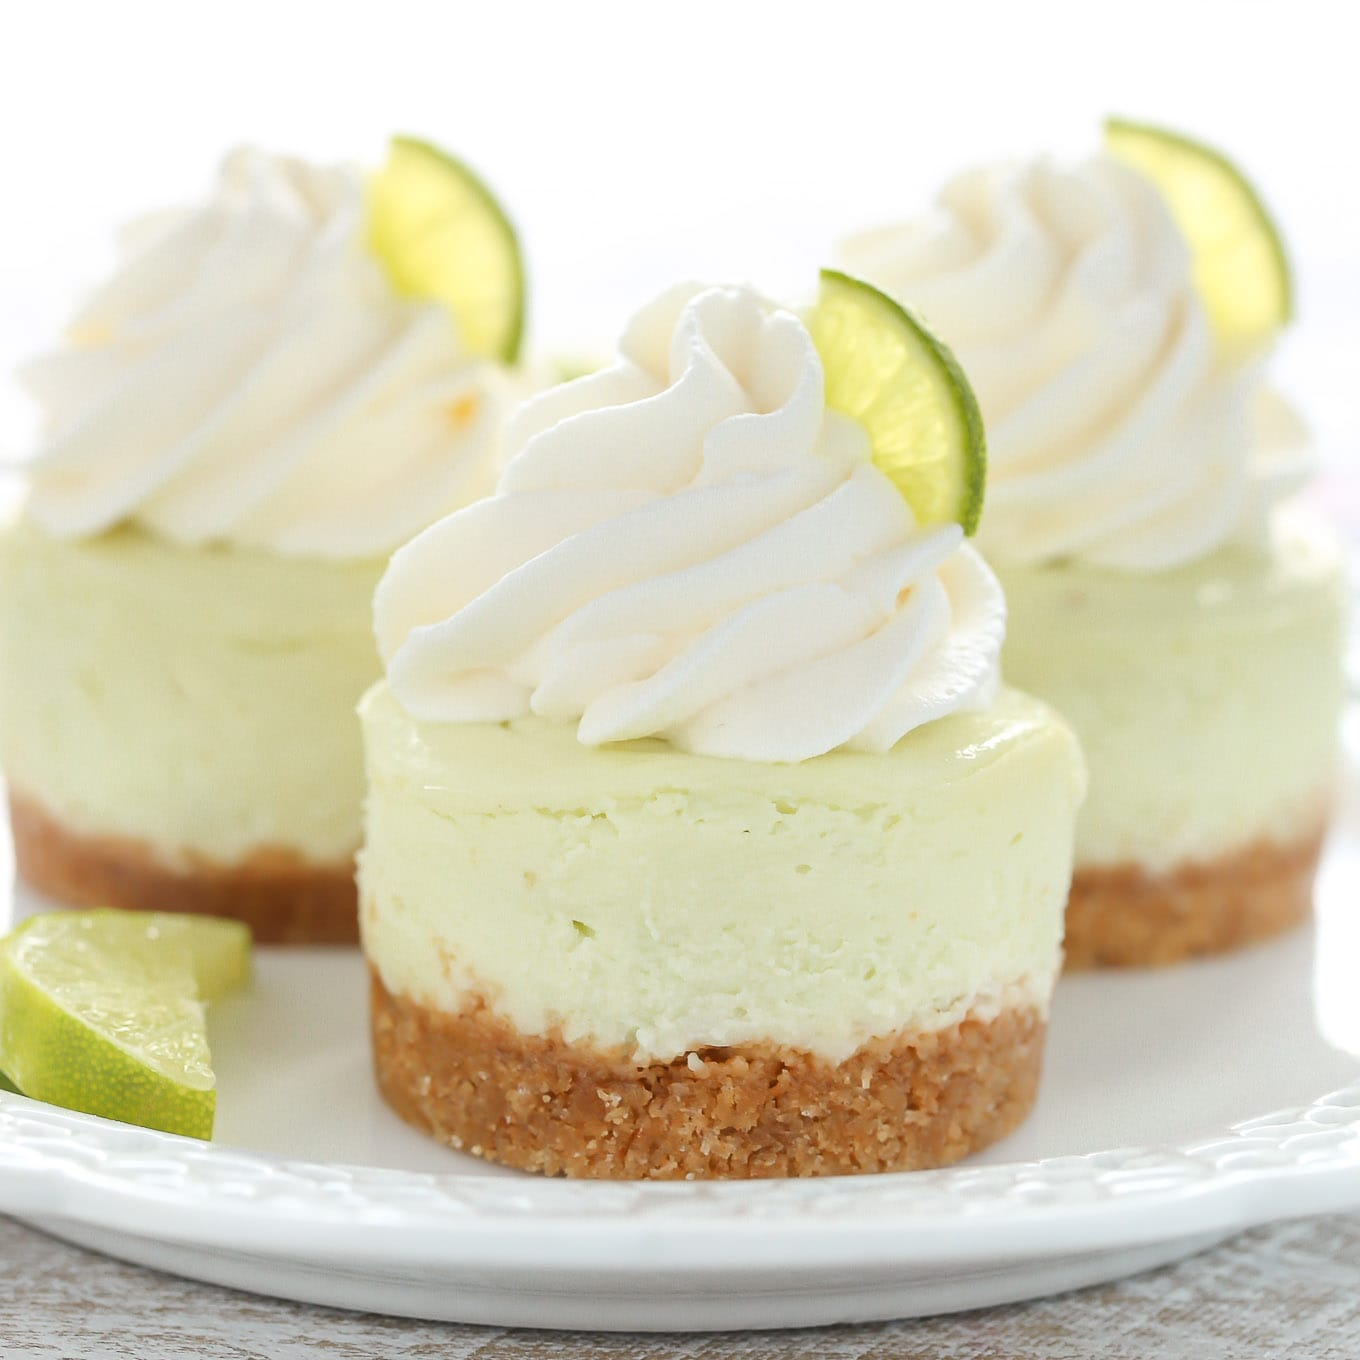 Mini Key Lime Cheesecakes - Live Well Bake Often